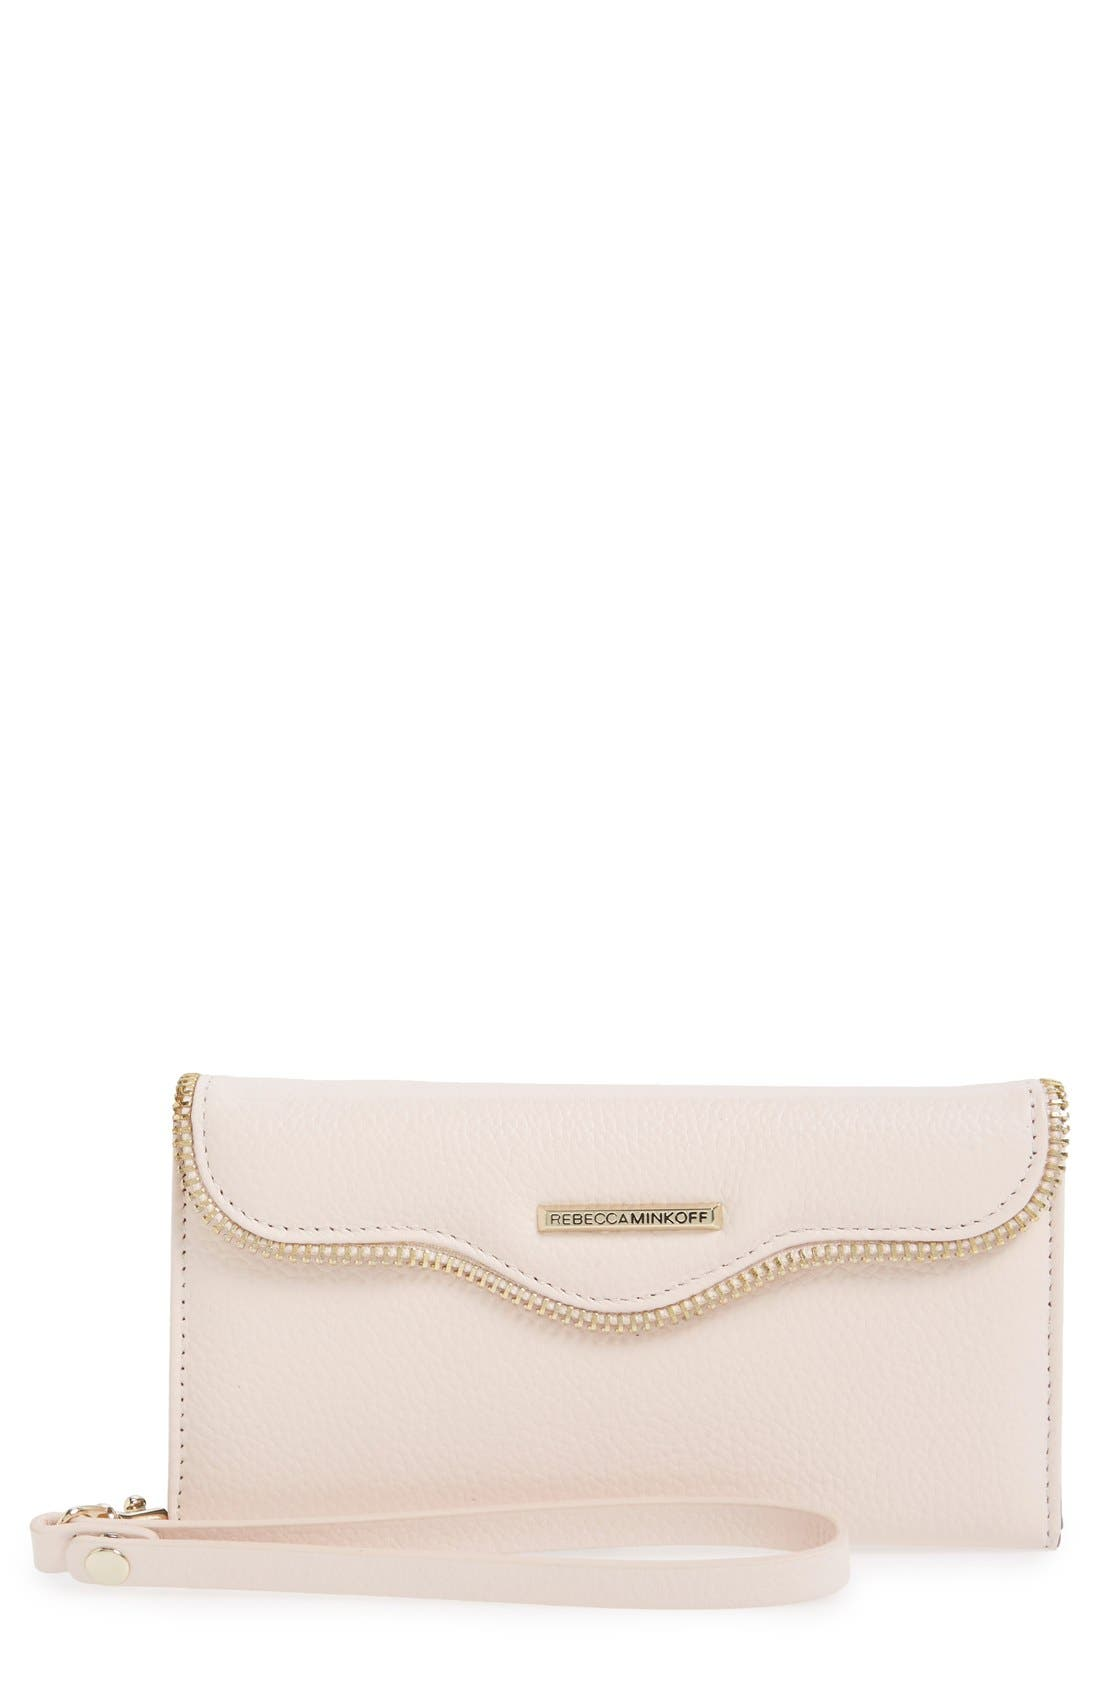 iPhone 6 Plus & 6s Plus Folio Wristlet,                         Main,                         color, Pale Blush